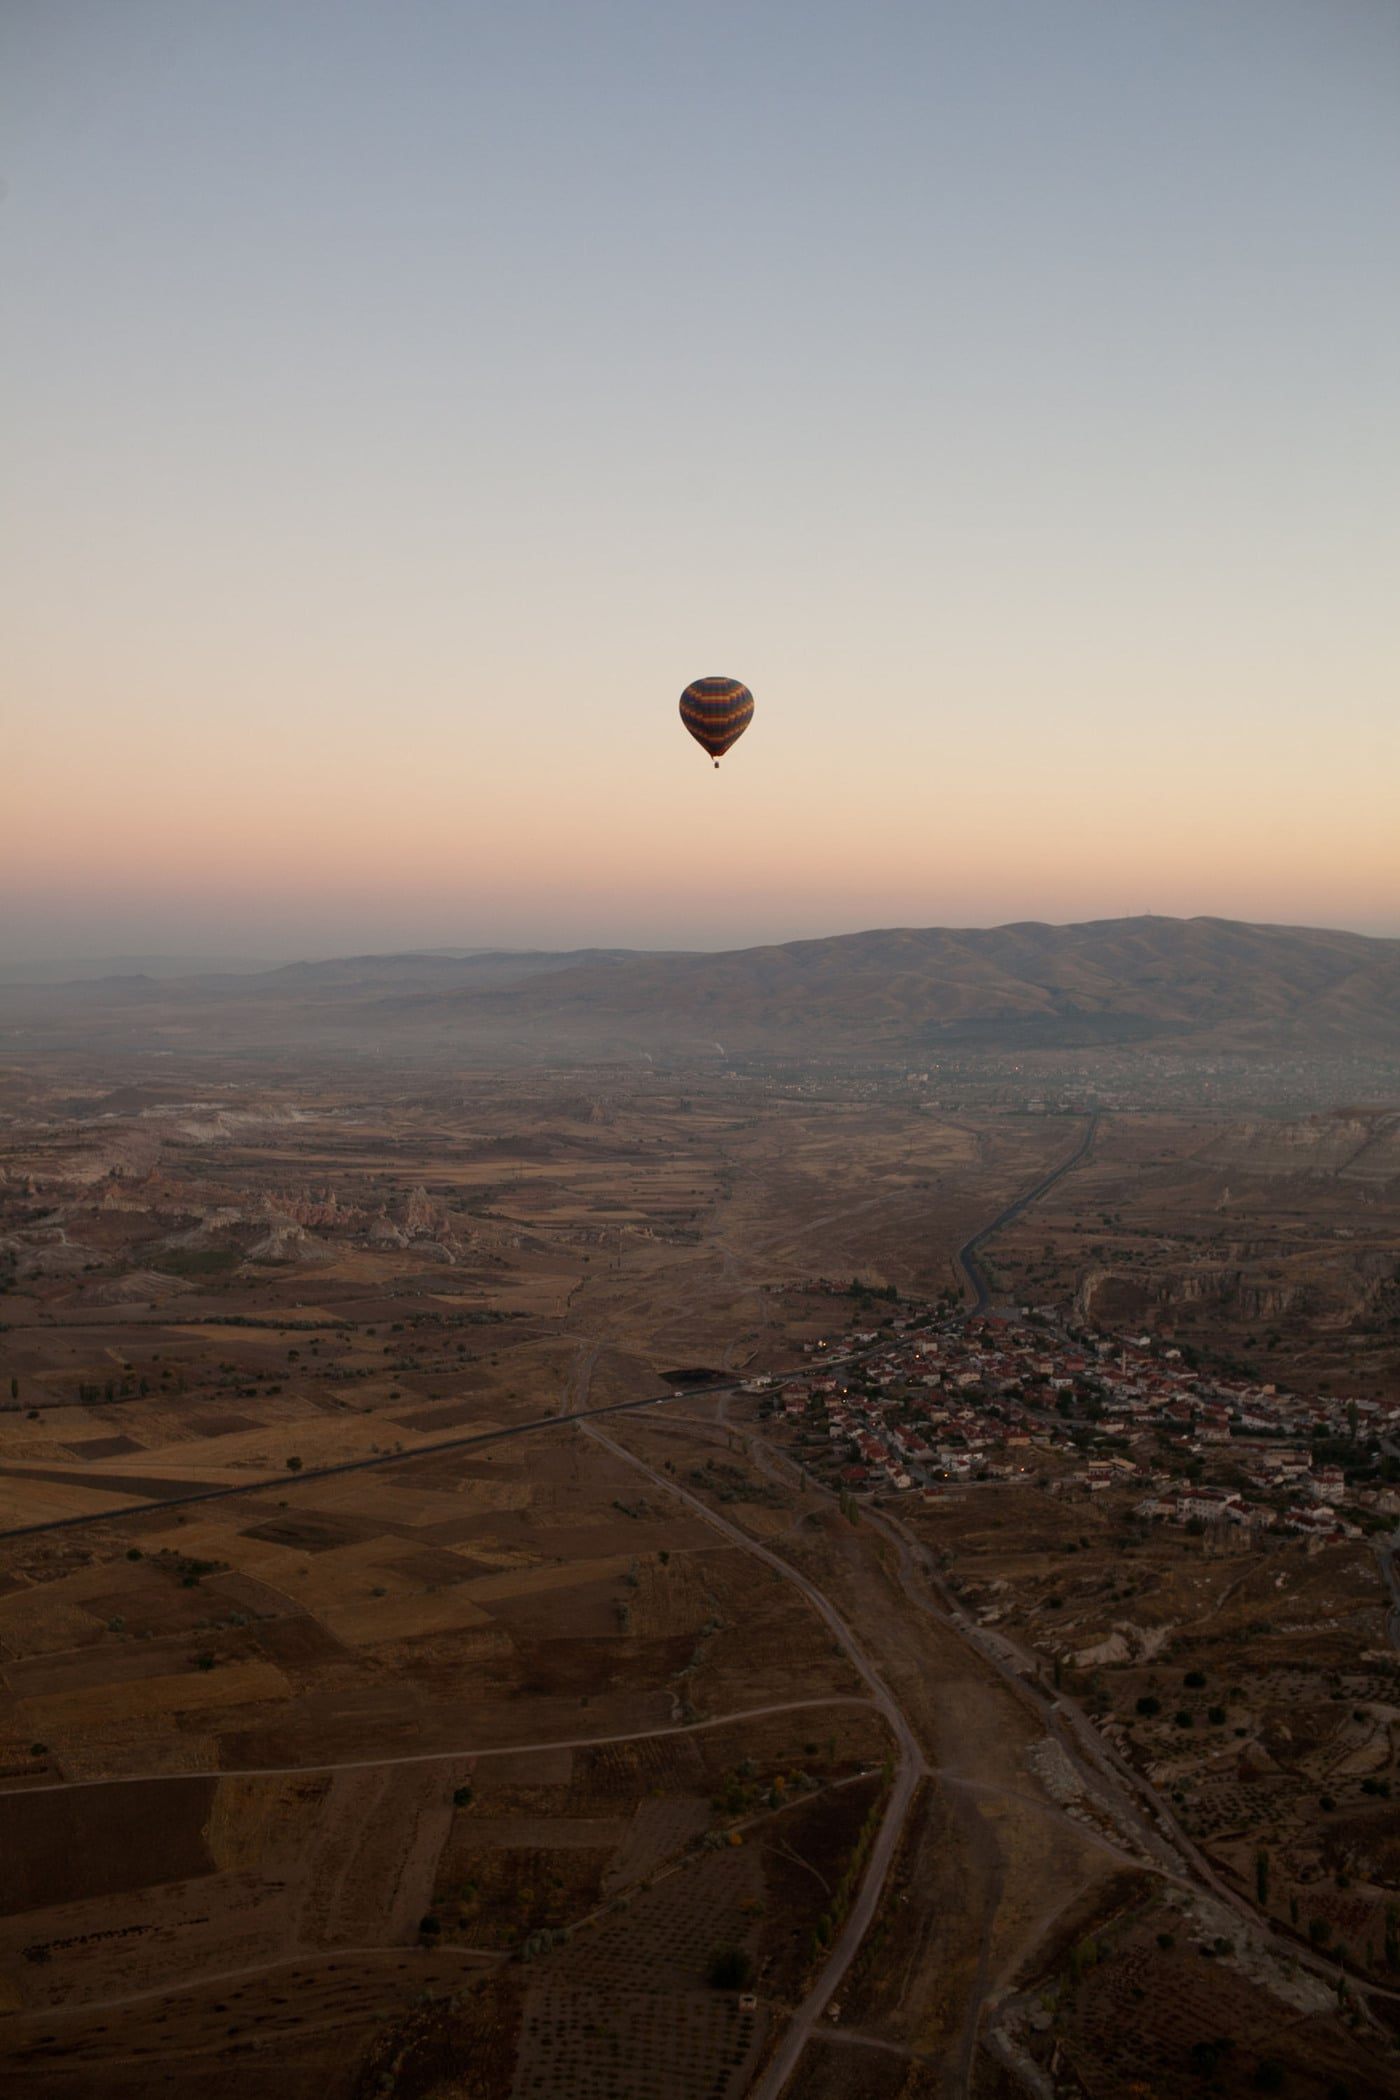 Ride on a hot air balloon - Hot air balloon ride in Cappadocia, Turkey